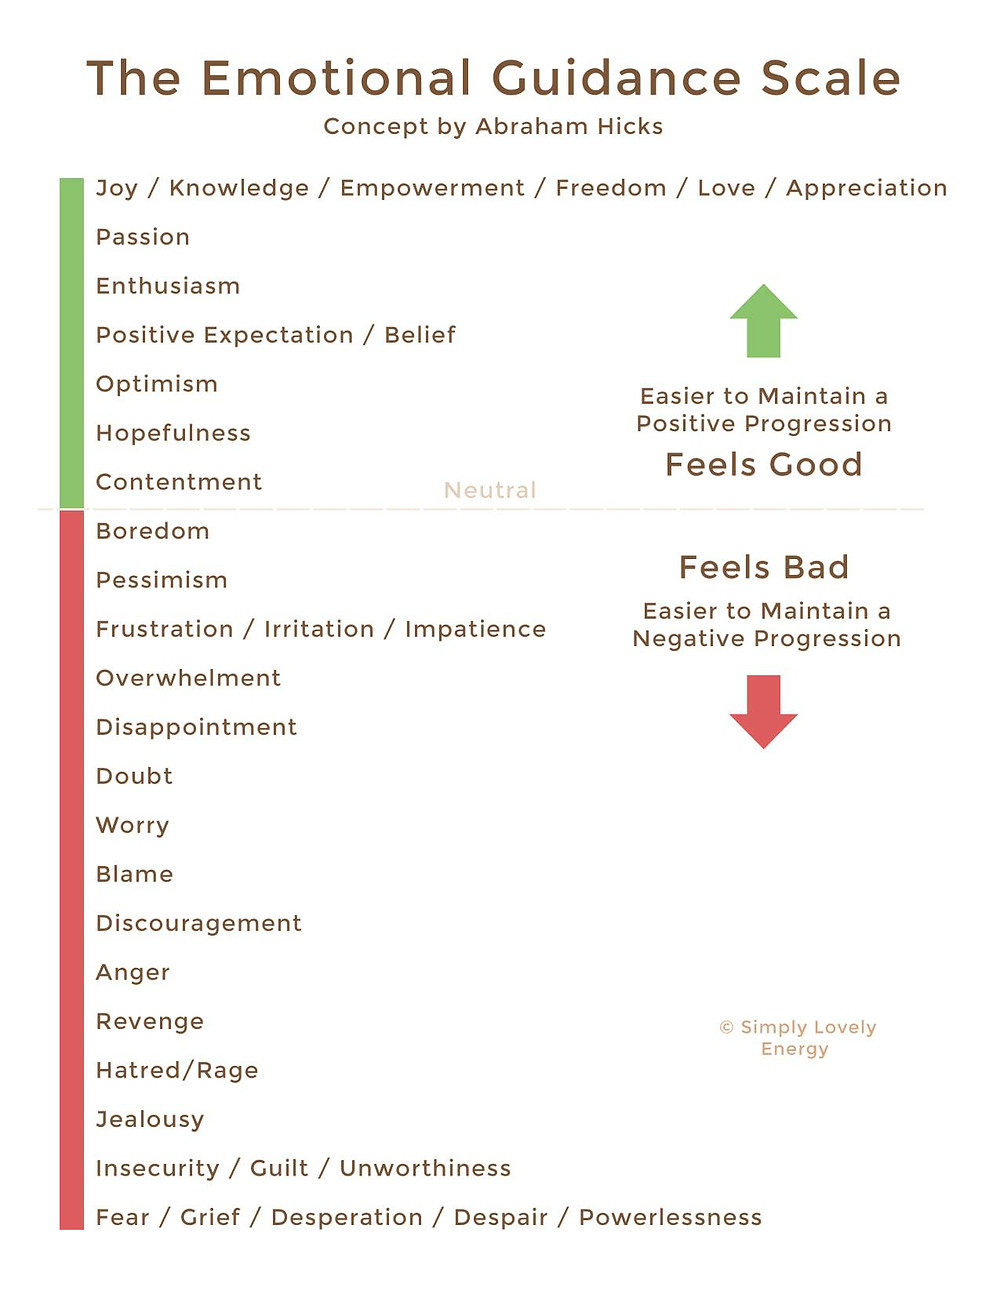 image of the emotional guidance scale